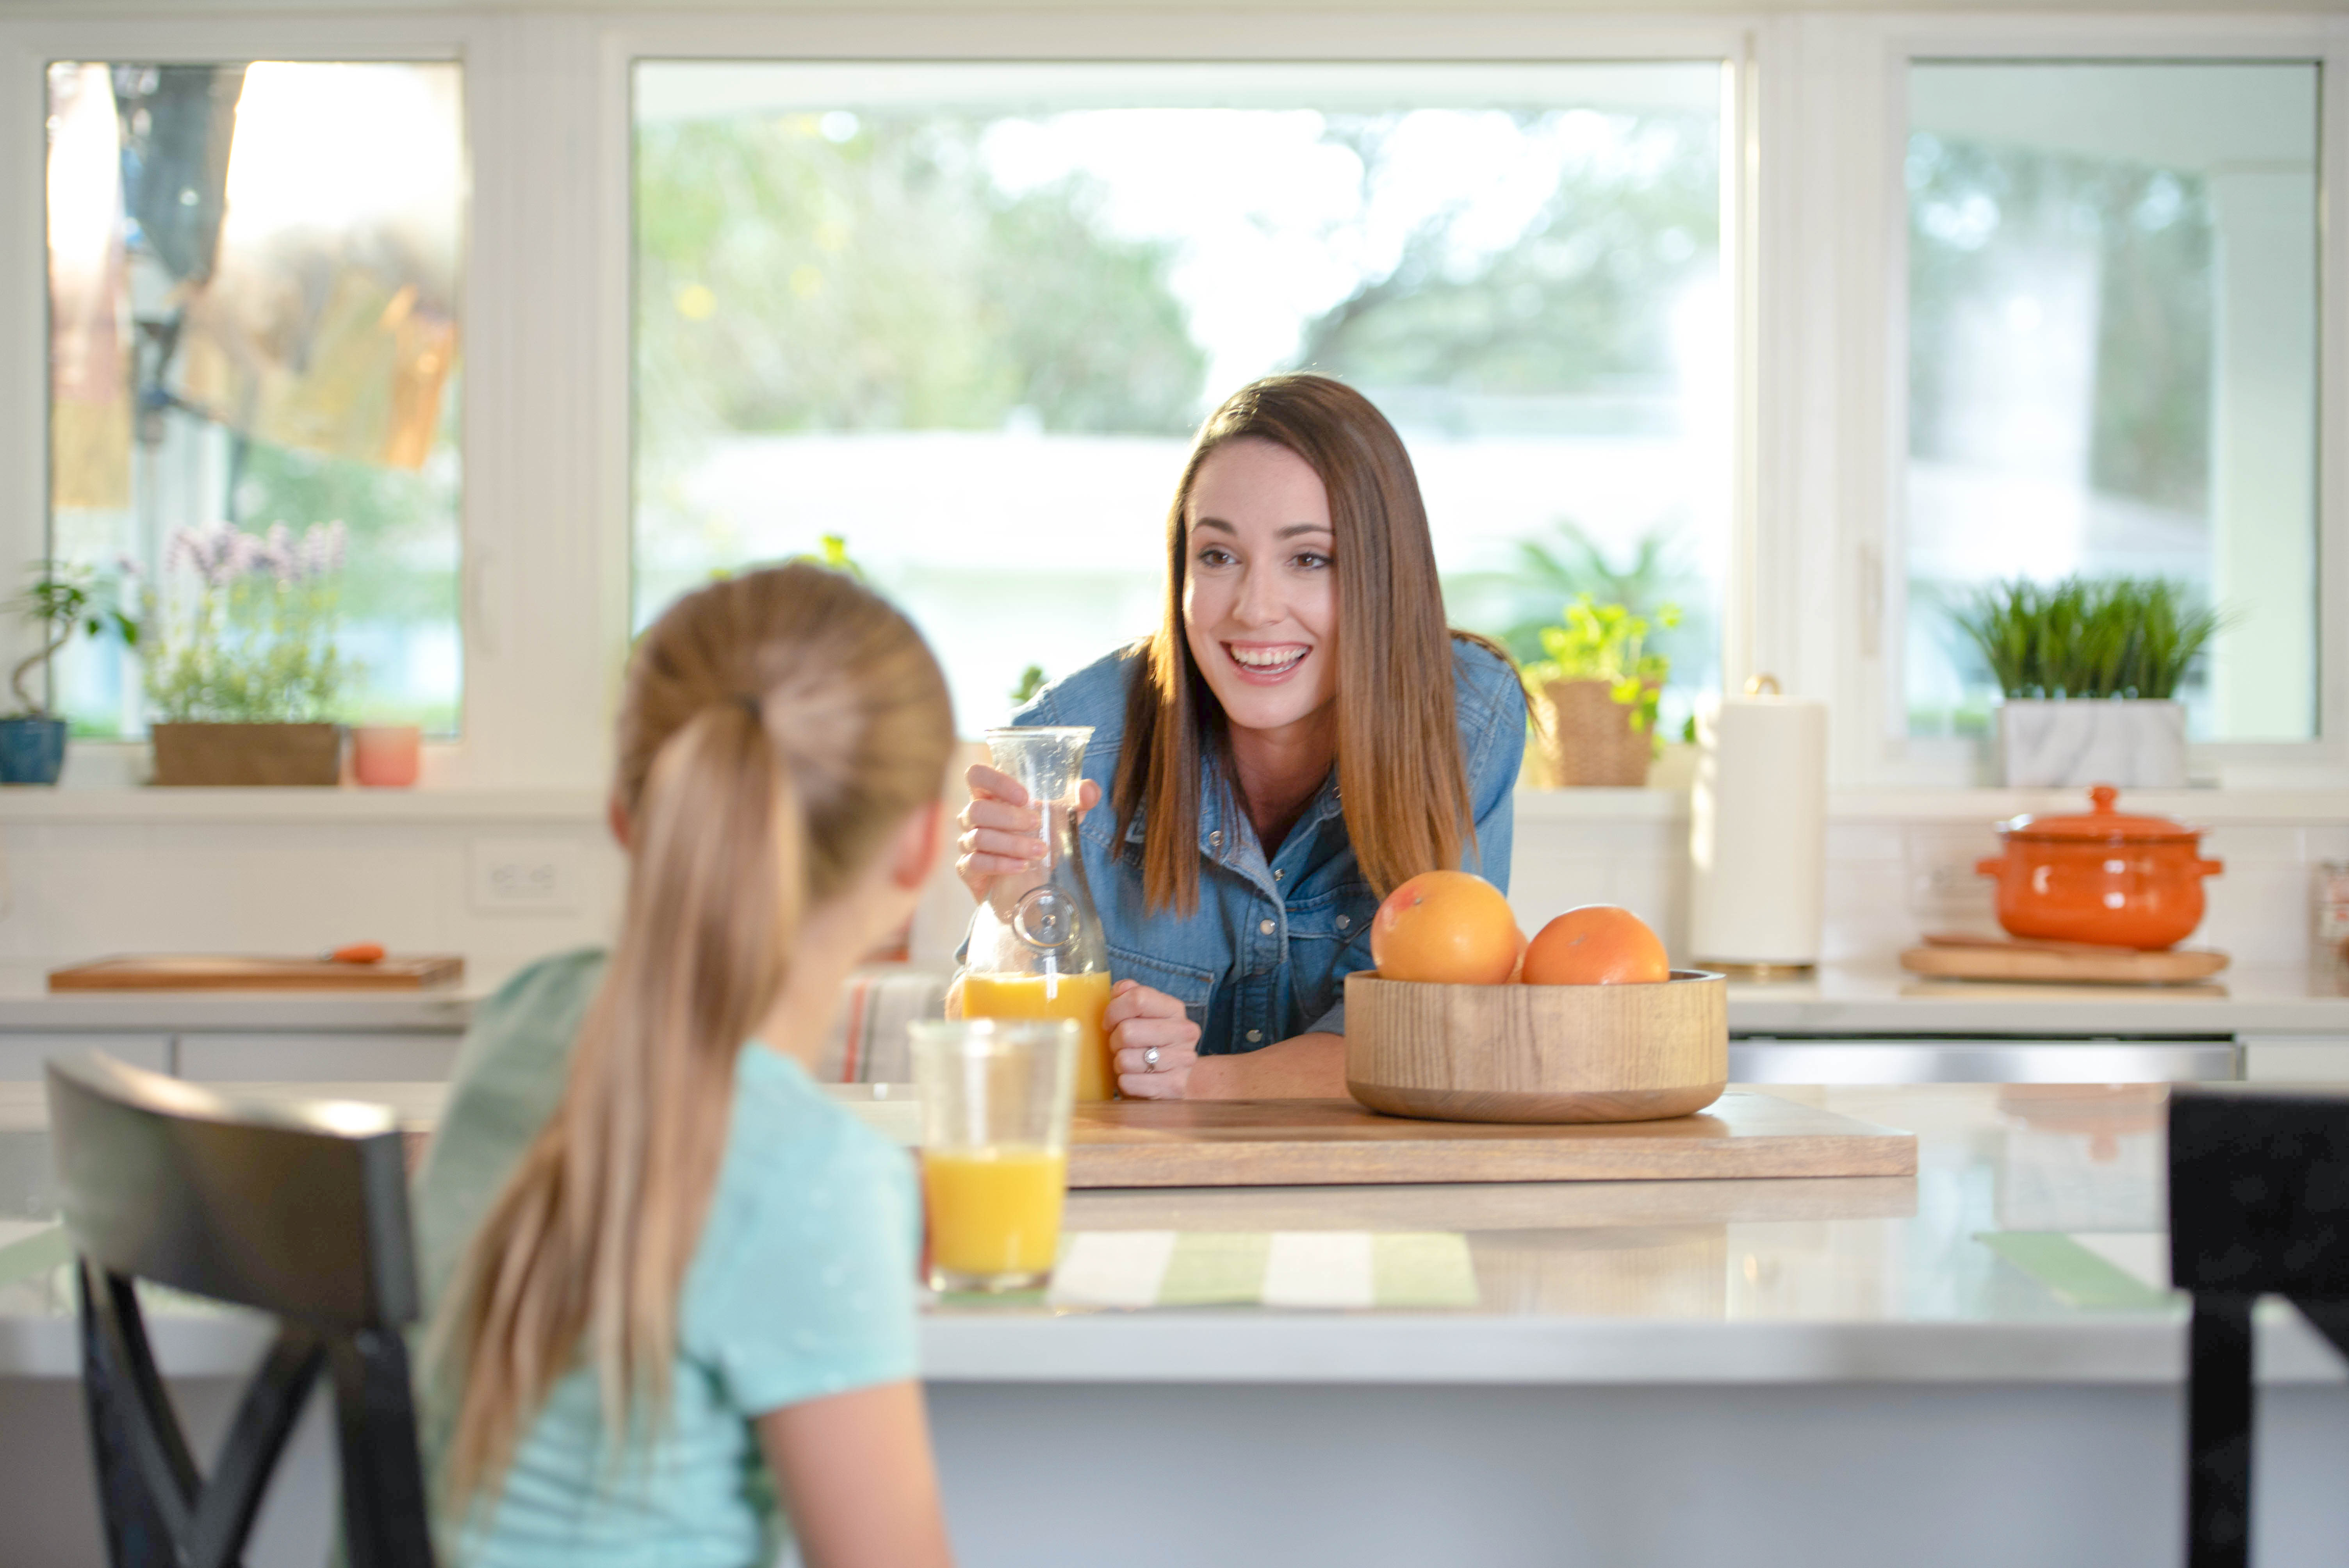 Mom and little girl sitting at a counter drinking florida orange juice